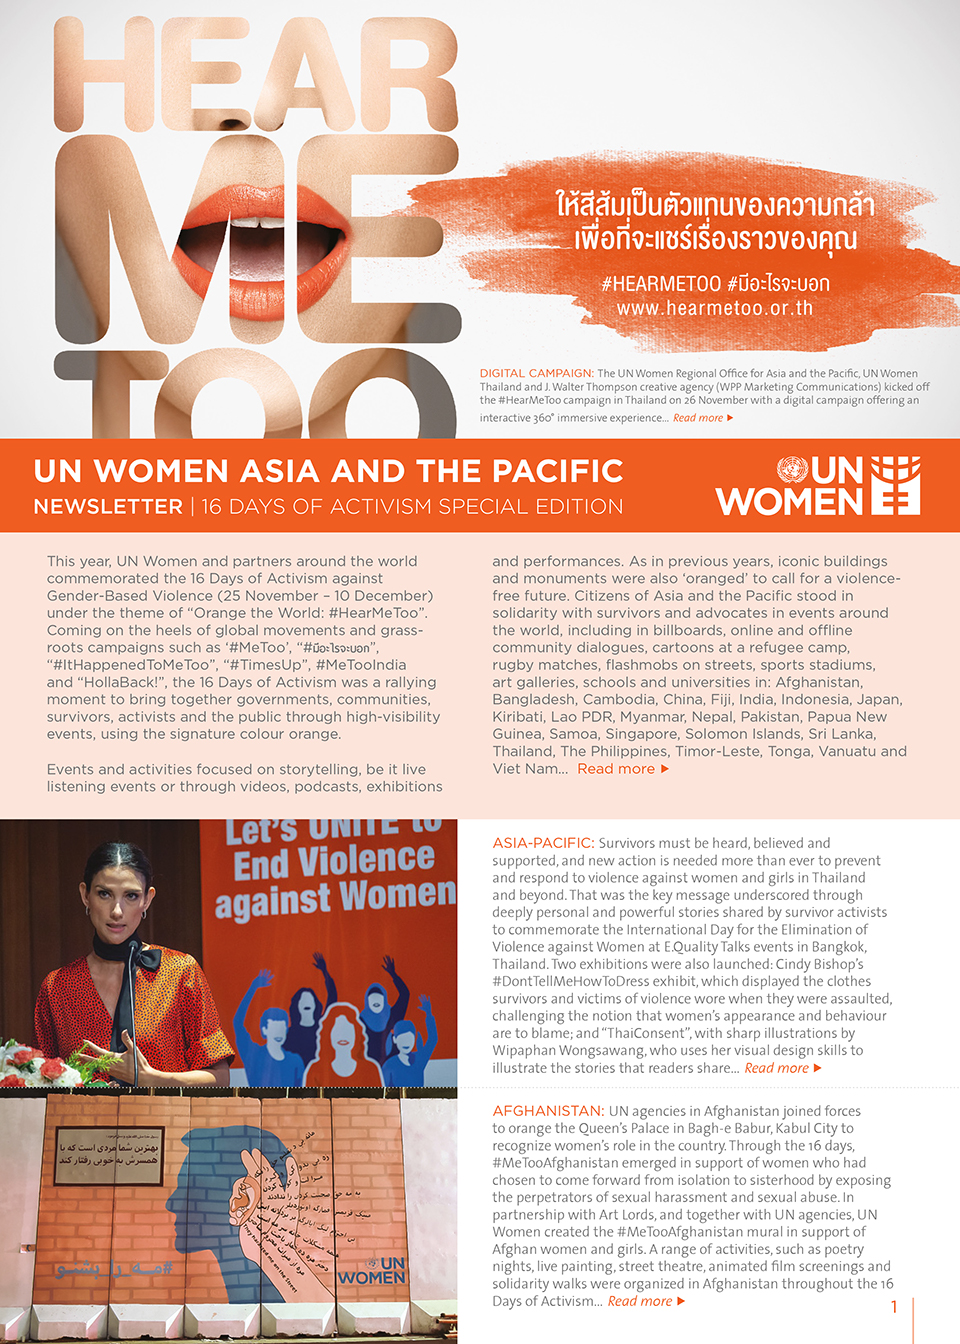 UN Women asia and the Pacific Newsletter   16 Days of Activism Special Edition